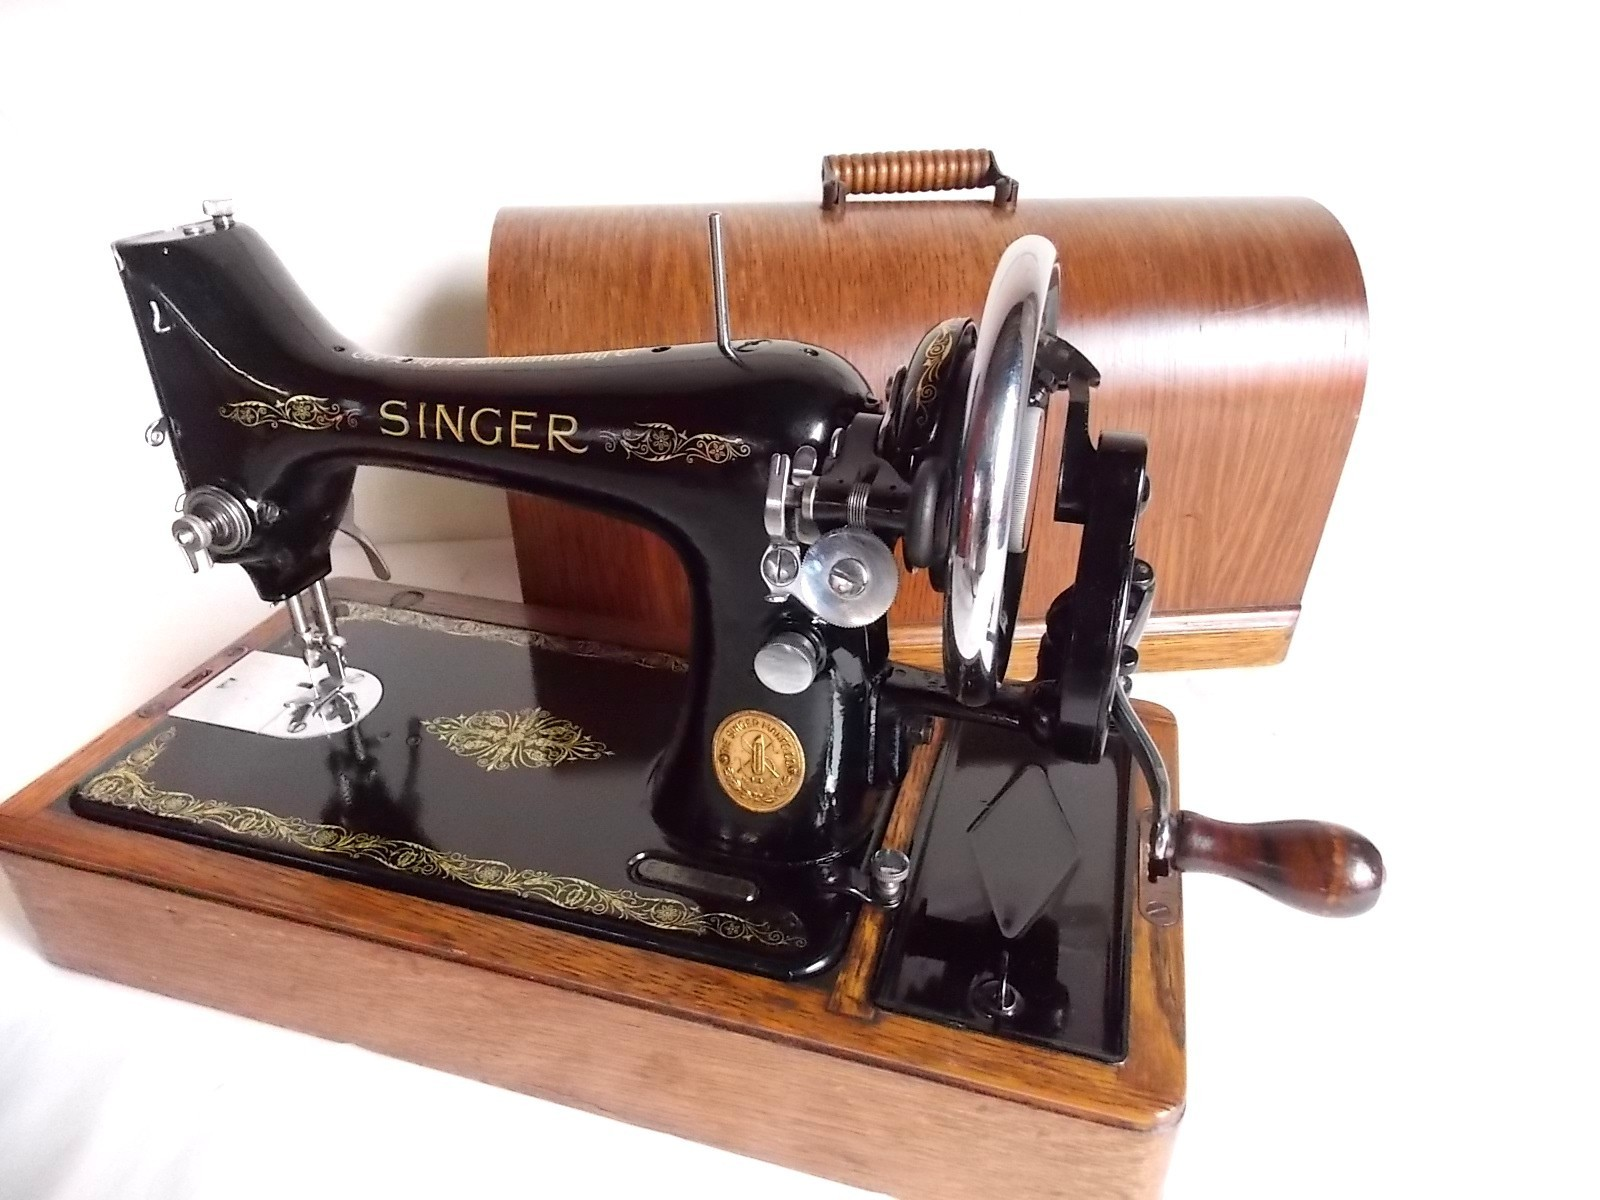 blog to express my mother 39 s singer sewing machine. Black Bedroom Furniture Sets. Home Design Ideas